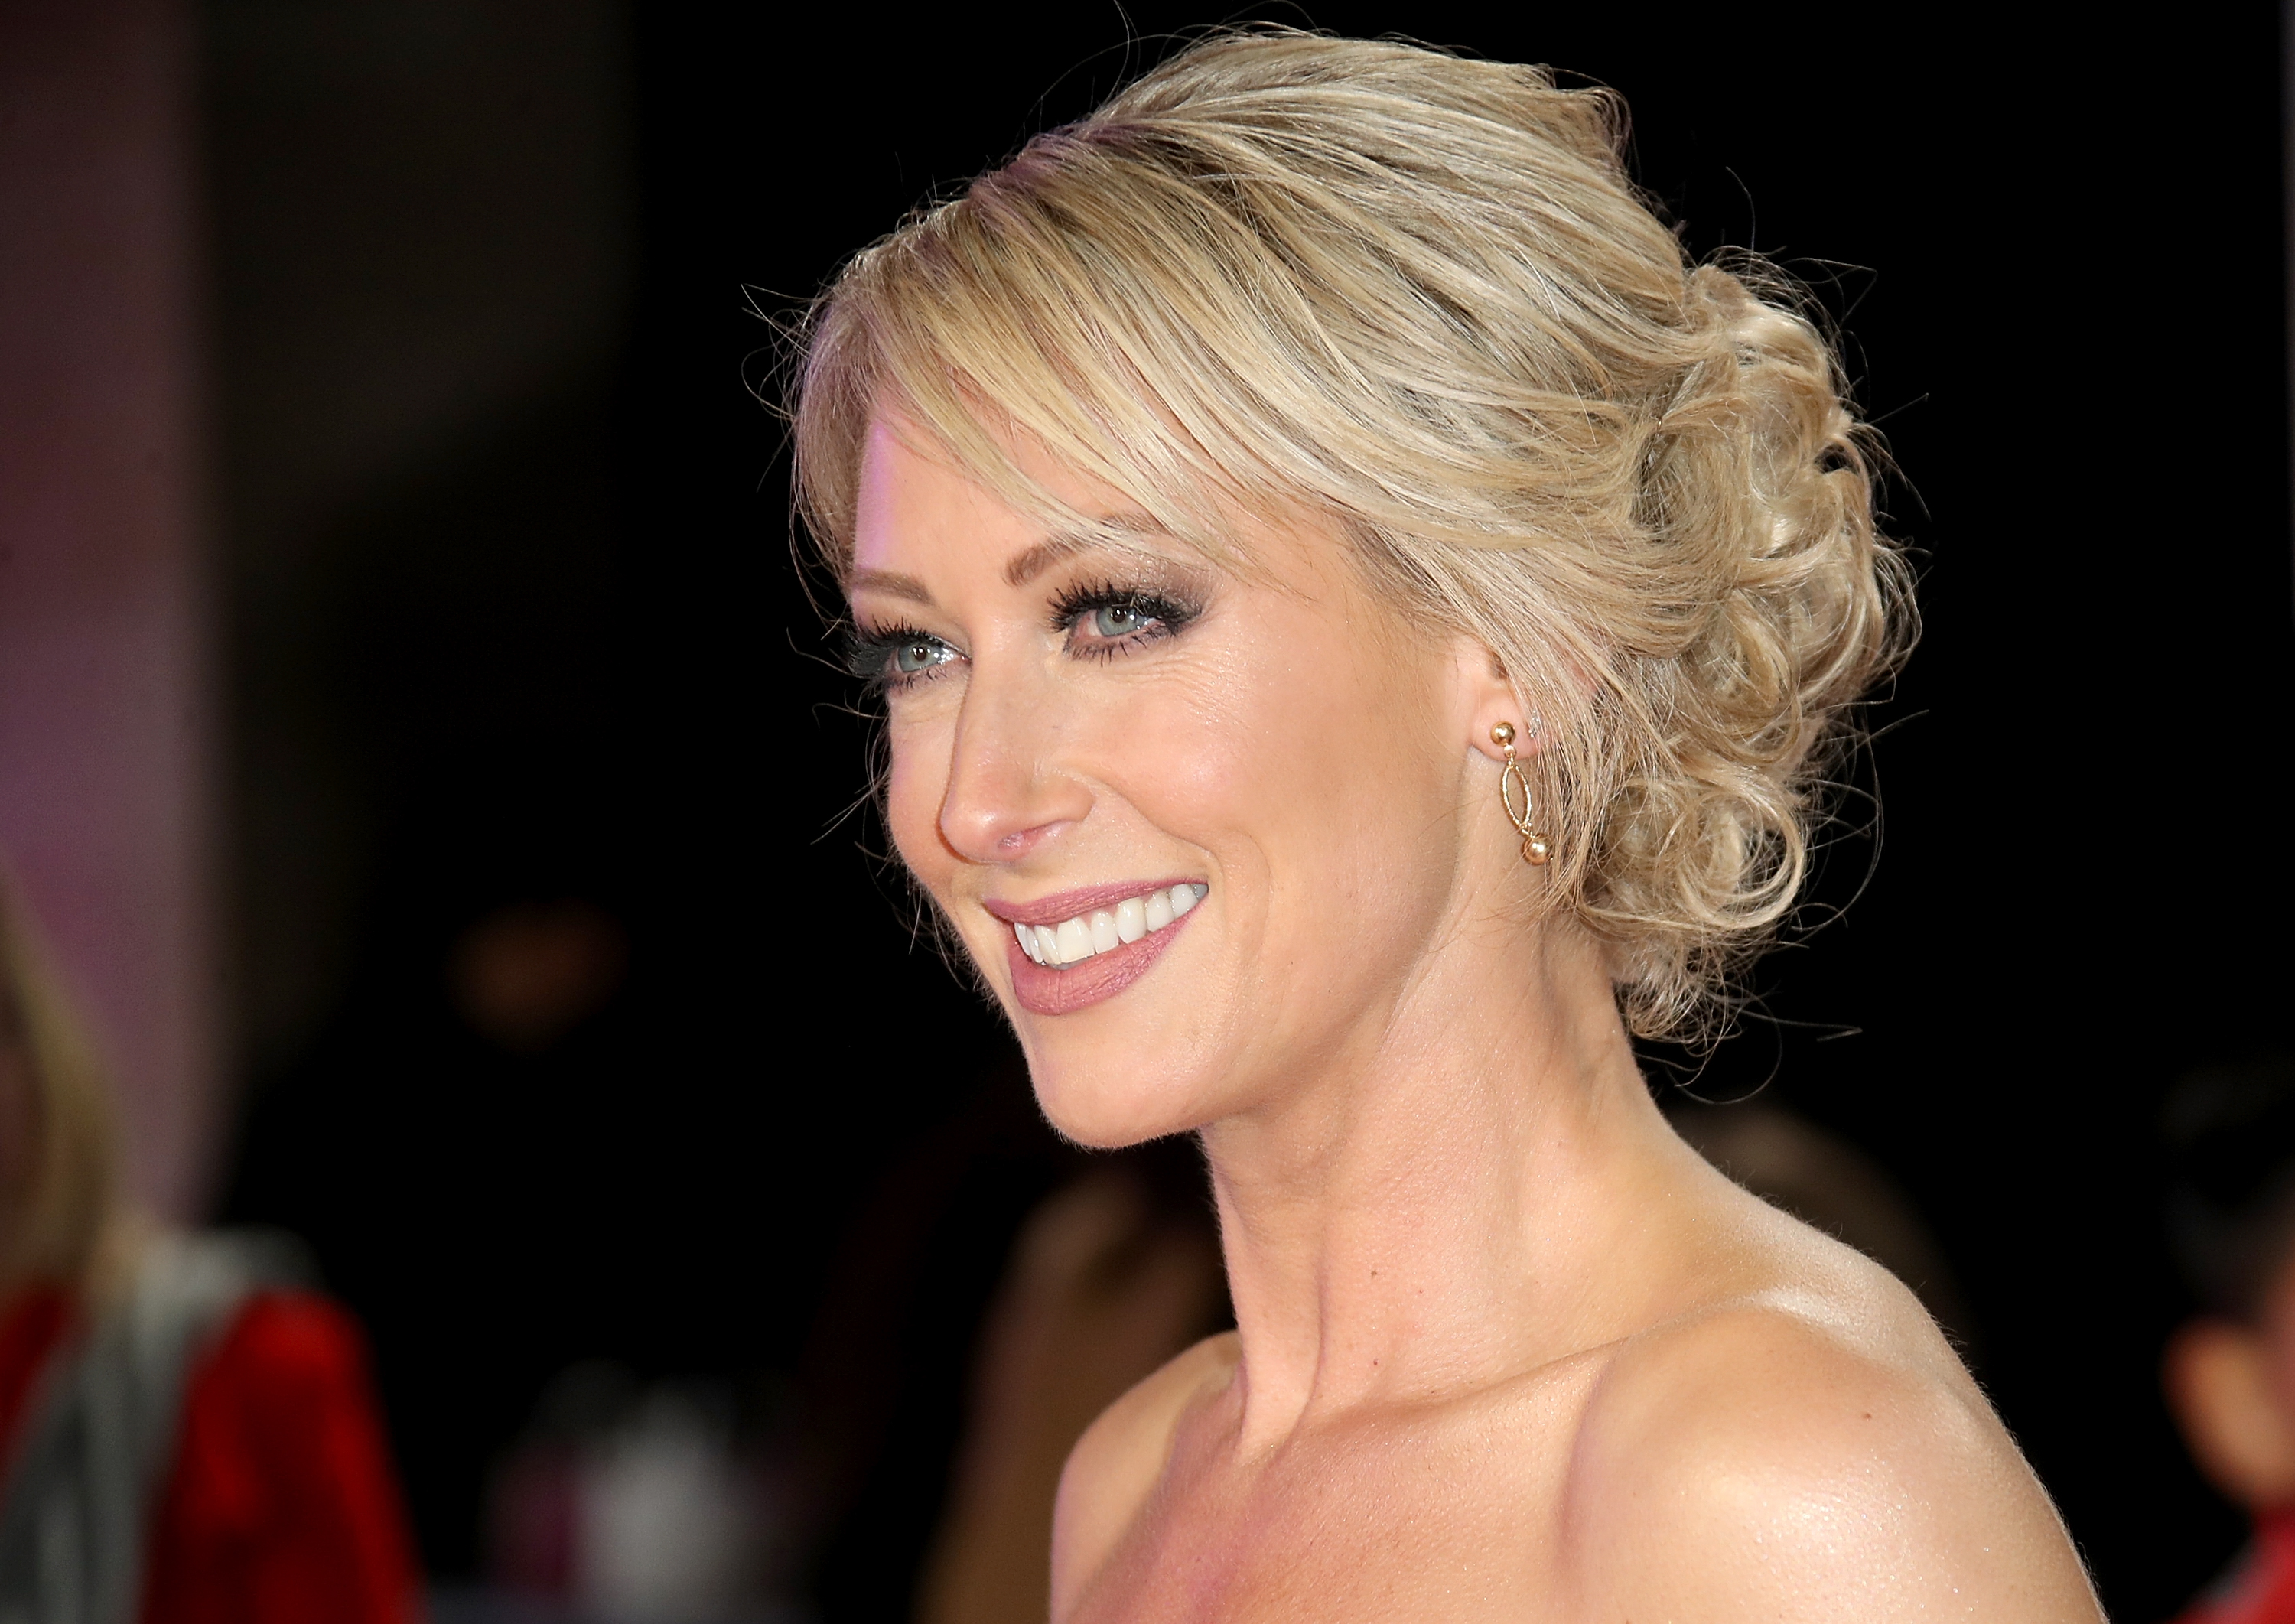 Faye Tozer felt 'emaciated' after Strictly as she weighed just over nine stone